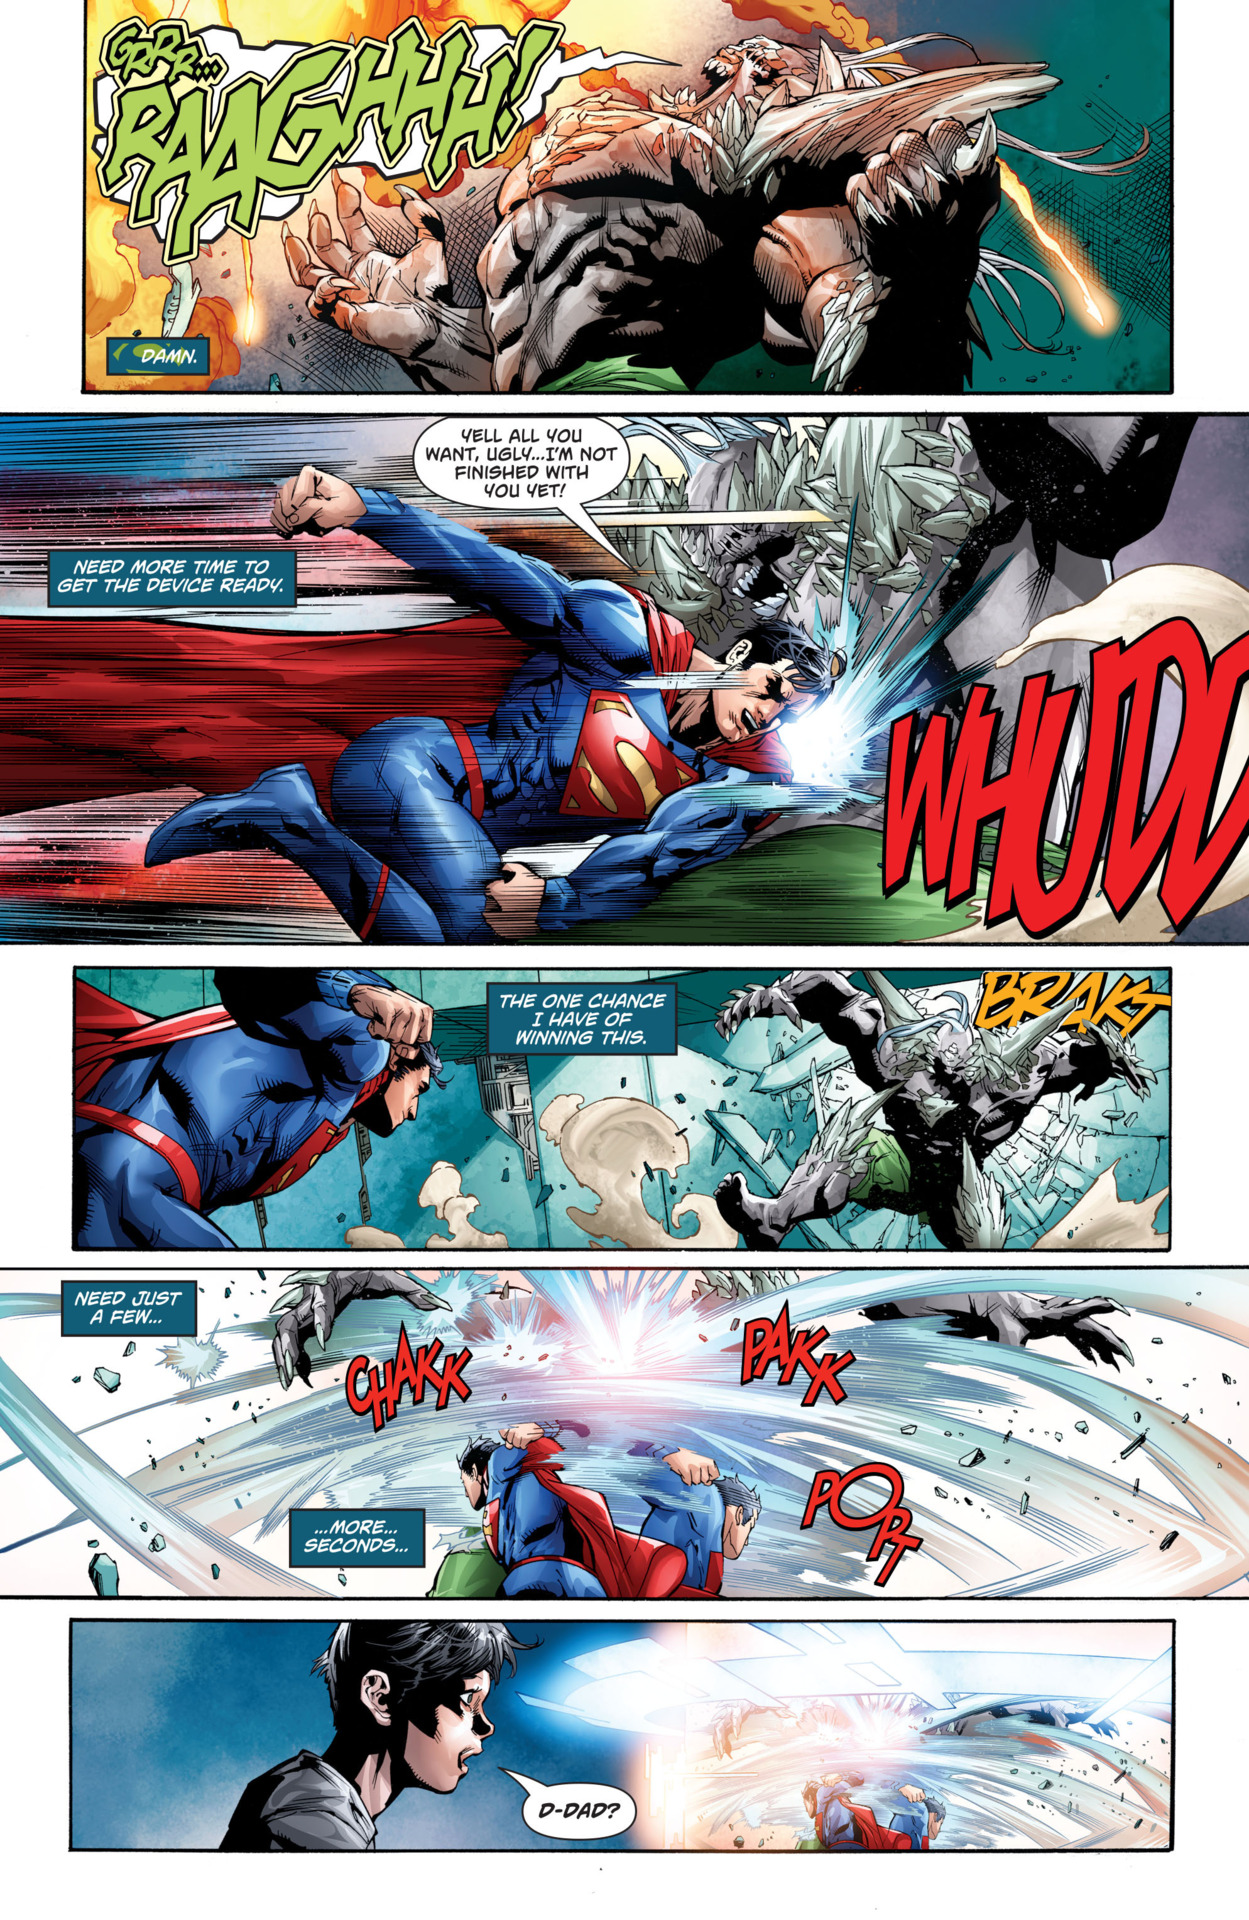 Punching Doomsday at super speed again